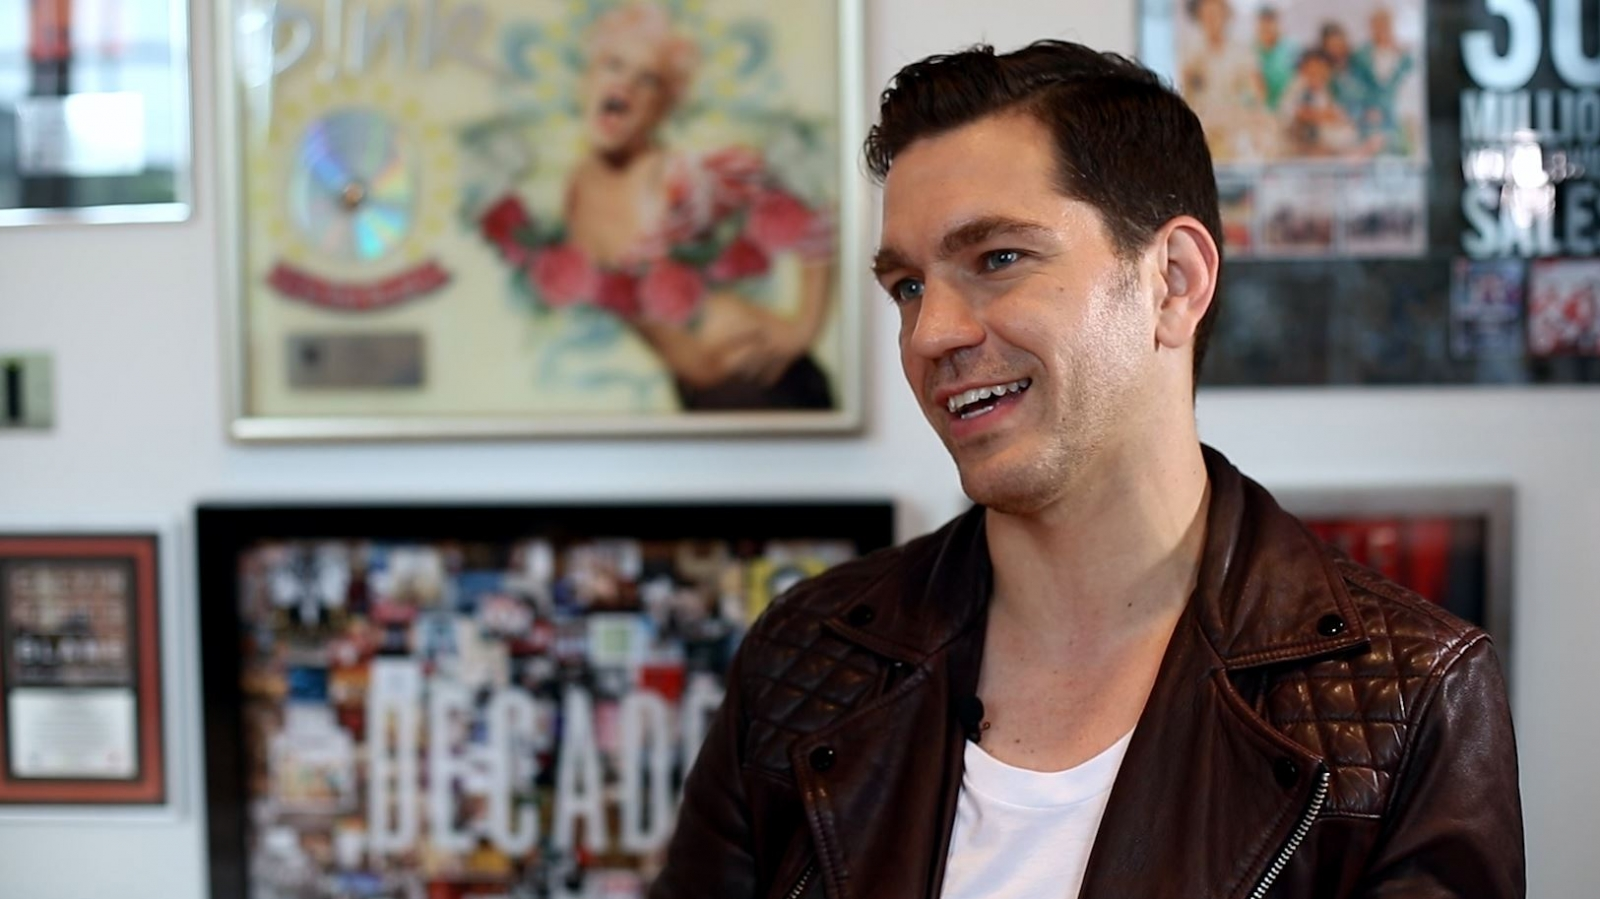 Andy Grammer US singer interview